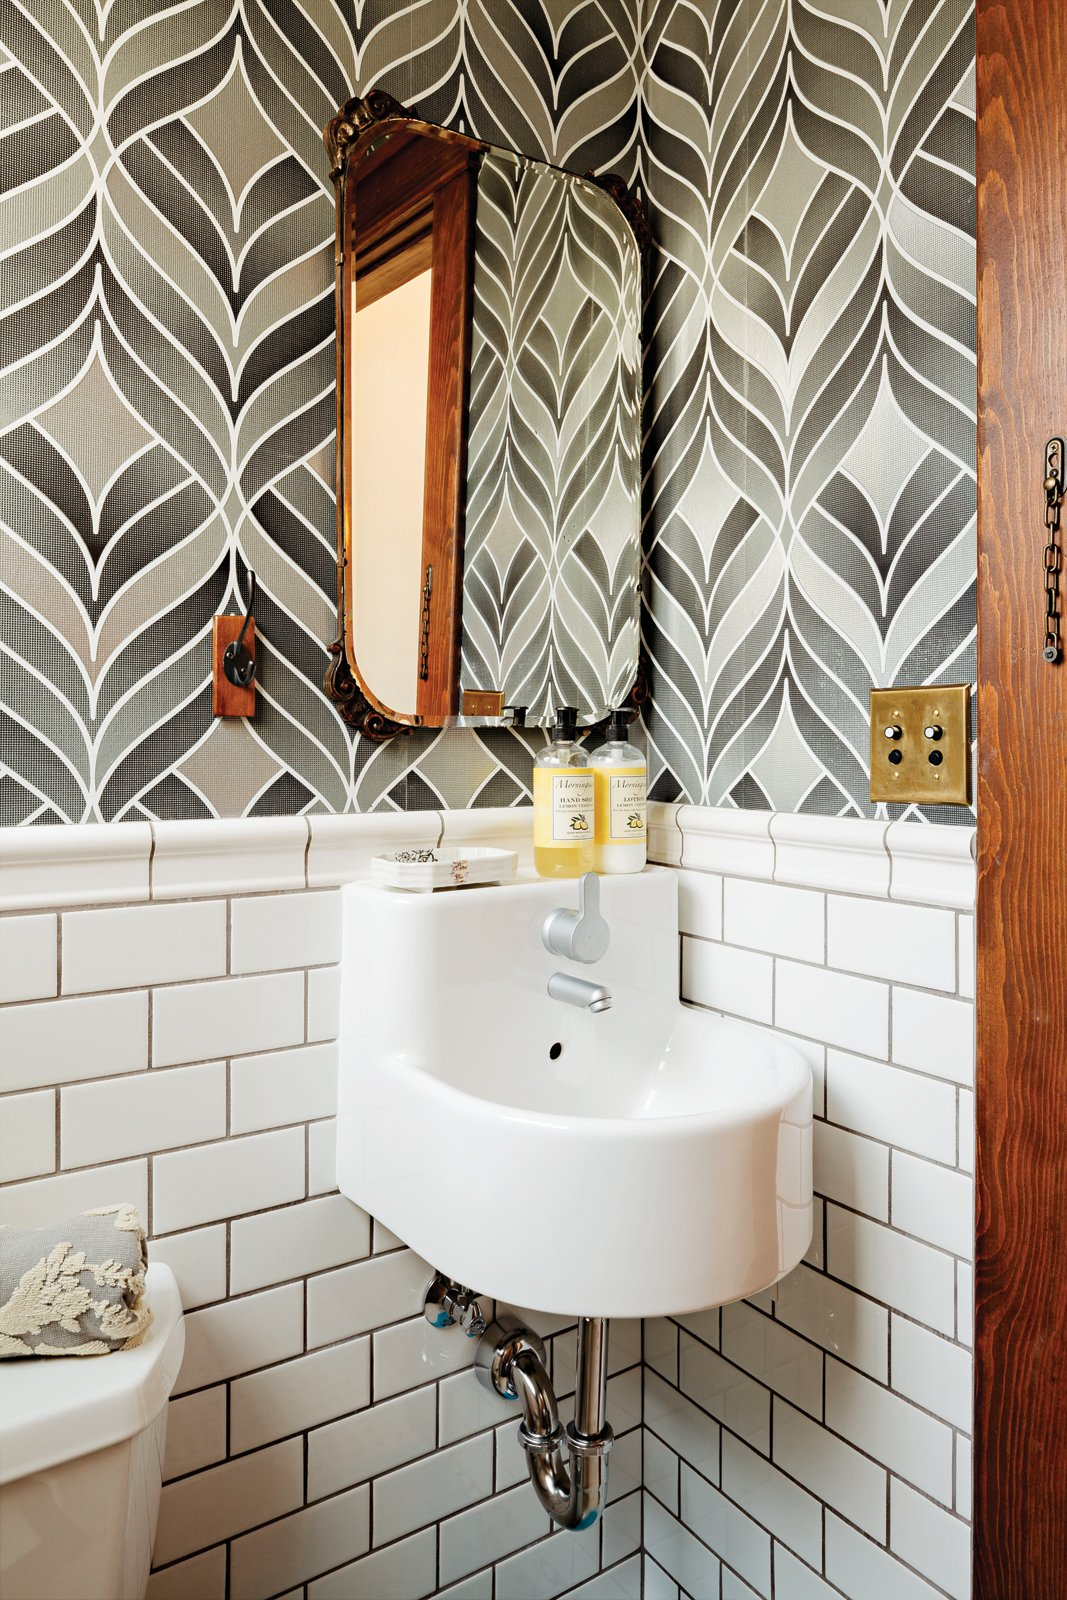 Playful wallpaper from Graham & Brown livens up the house's otherwise staid   powder room, which also contains a   pint-size Ikea sink. Tagged: Bath Room, Wall Mount Sink, and Subway Tile Wall.  Photo 17 of 42 in Wallpaper That Fixes Walls